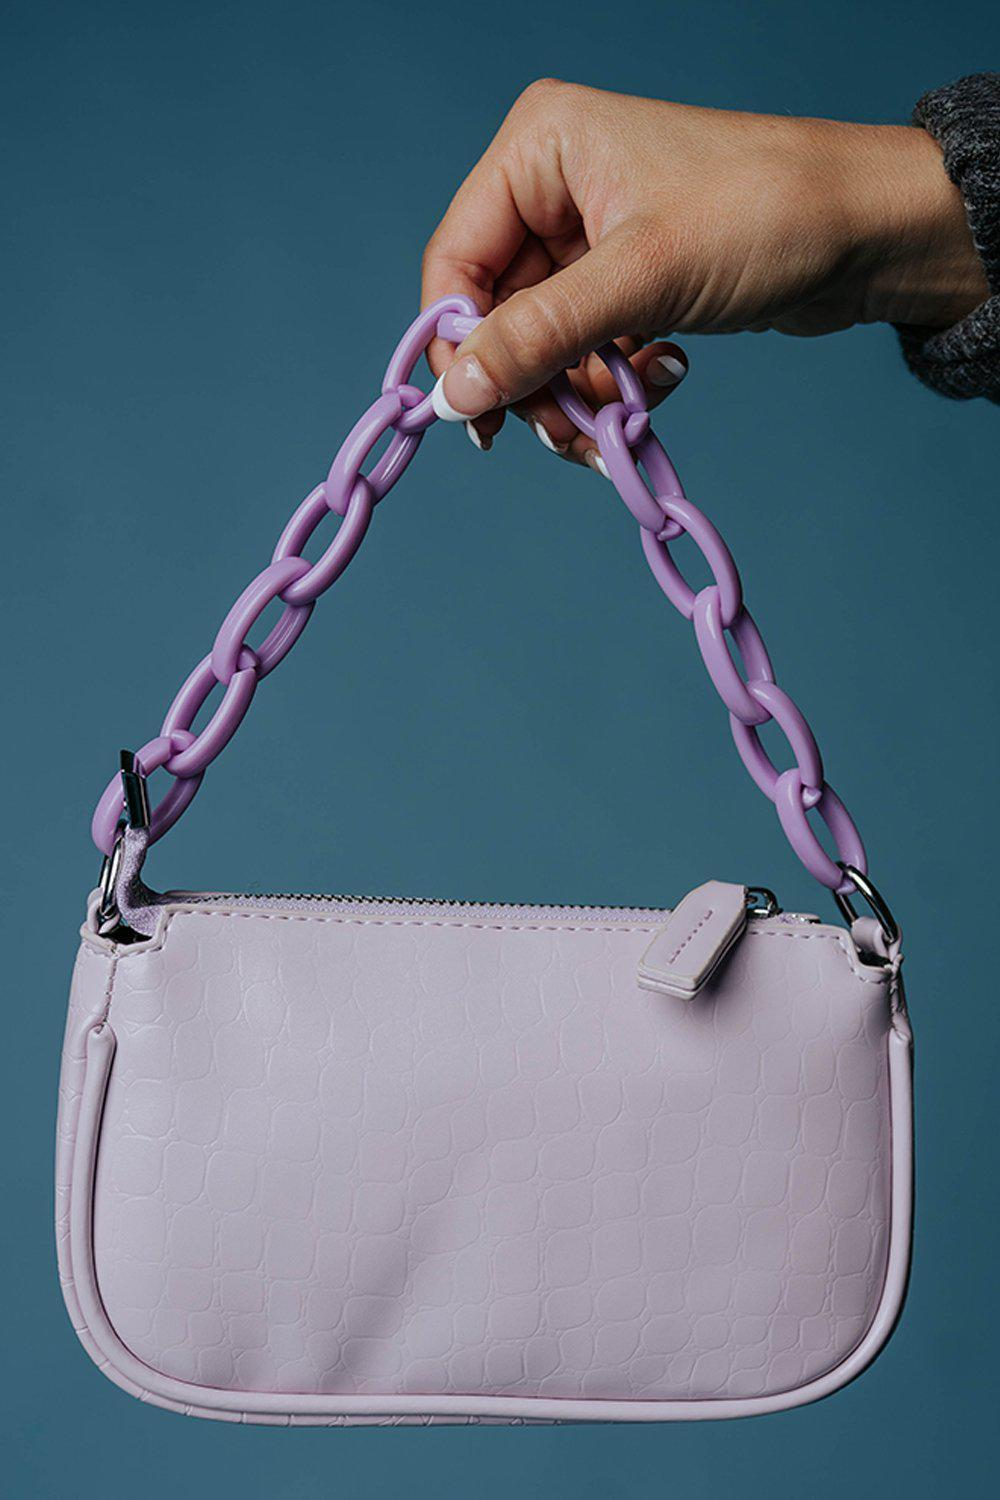 In a While Crocodile Shoulder Bag in Lavender-Accessory-Appleblossom-OS-Clad & Cloth